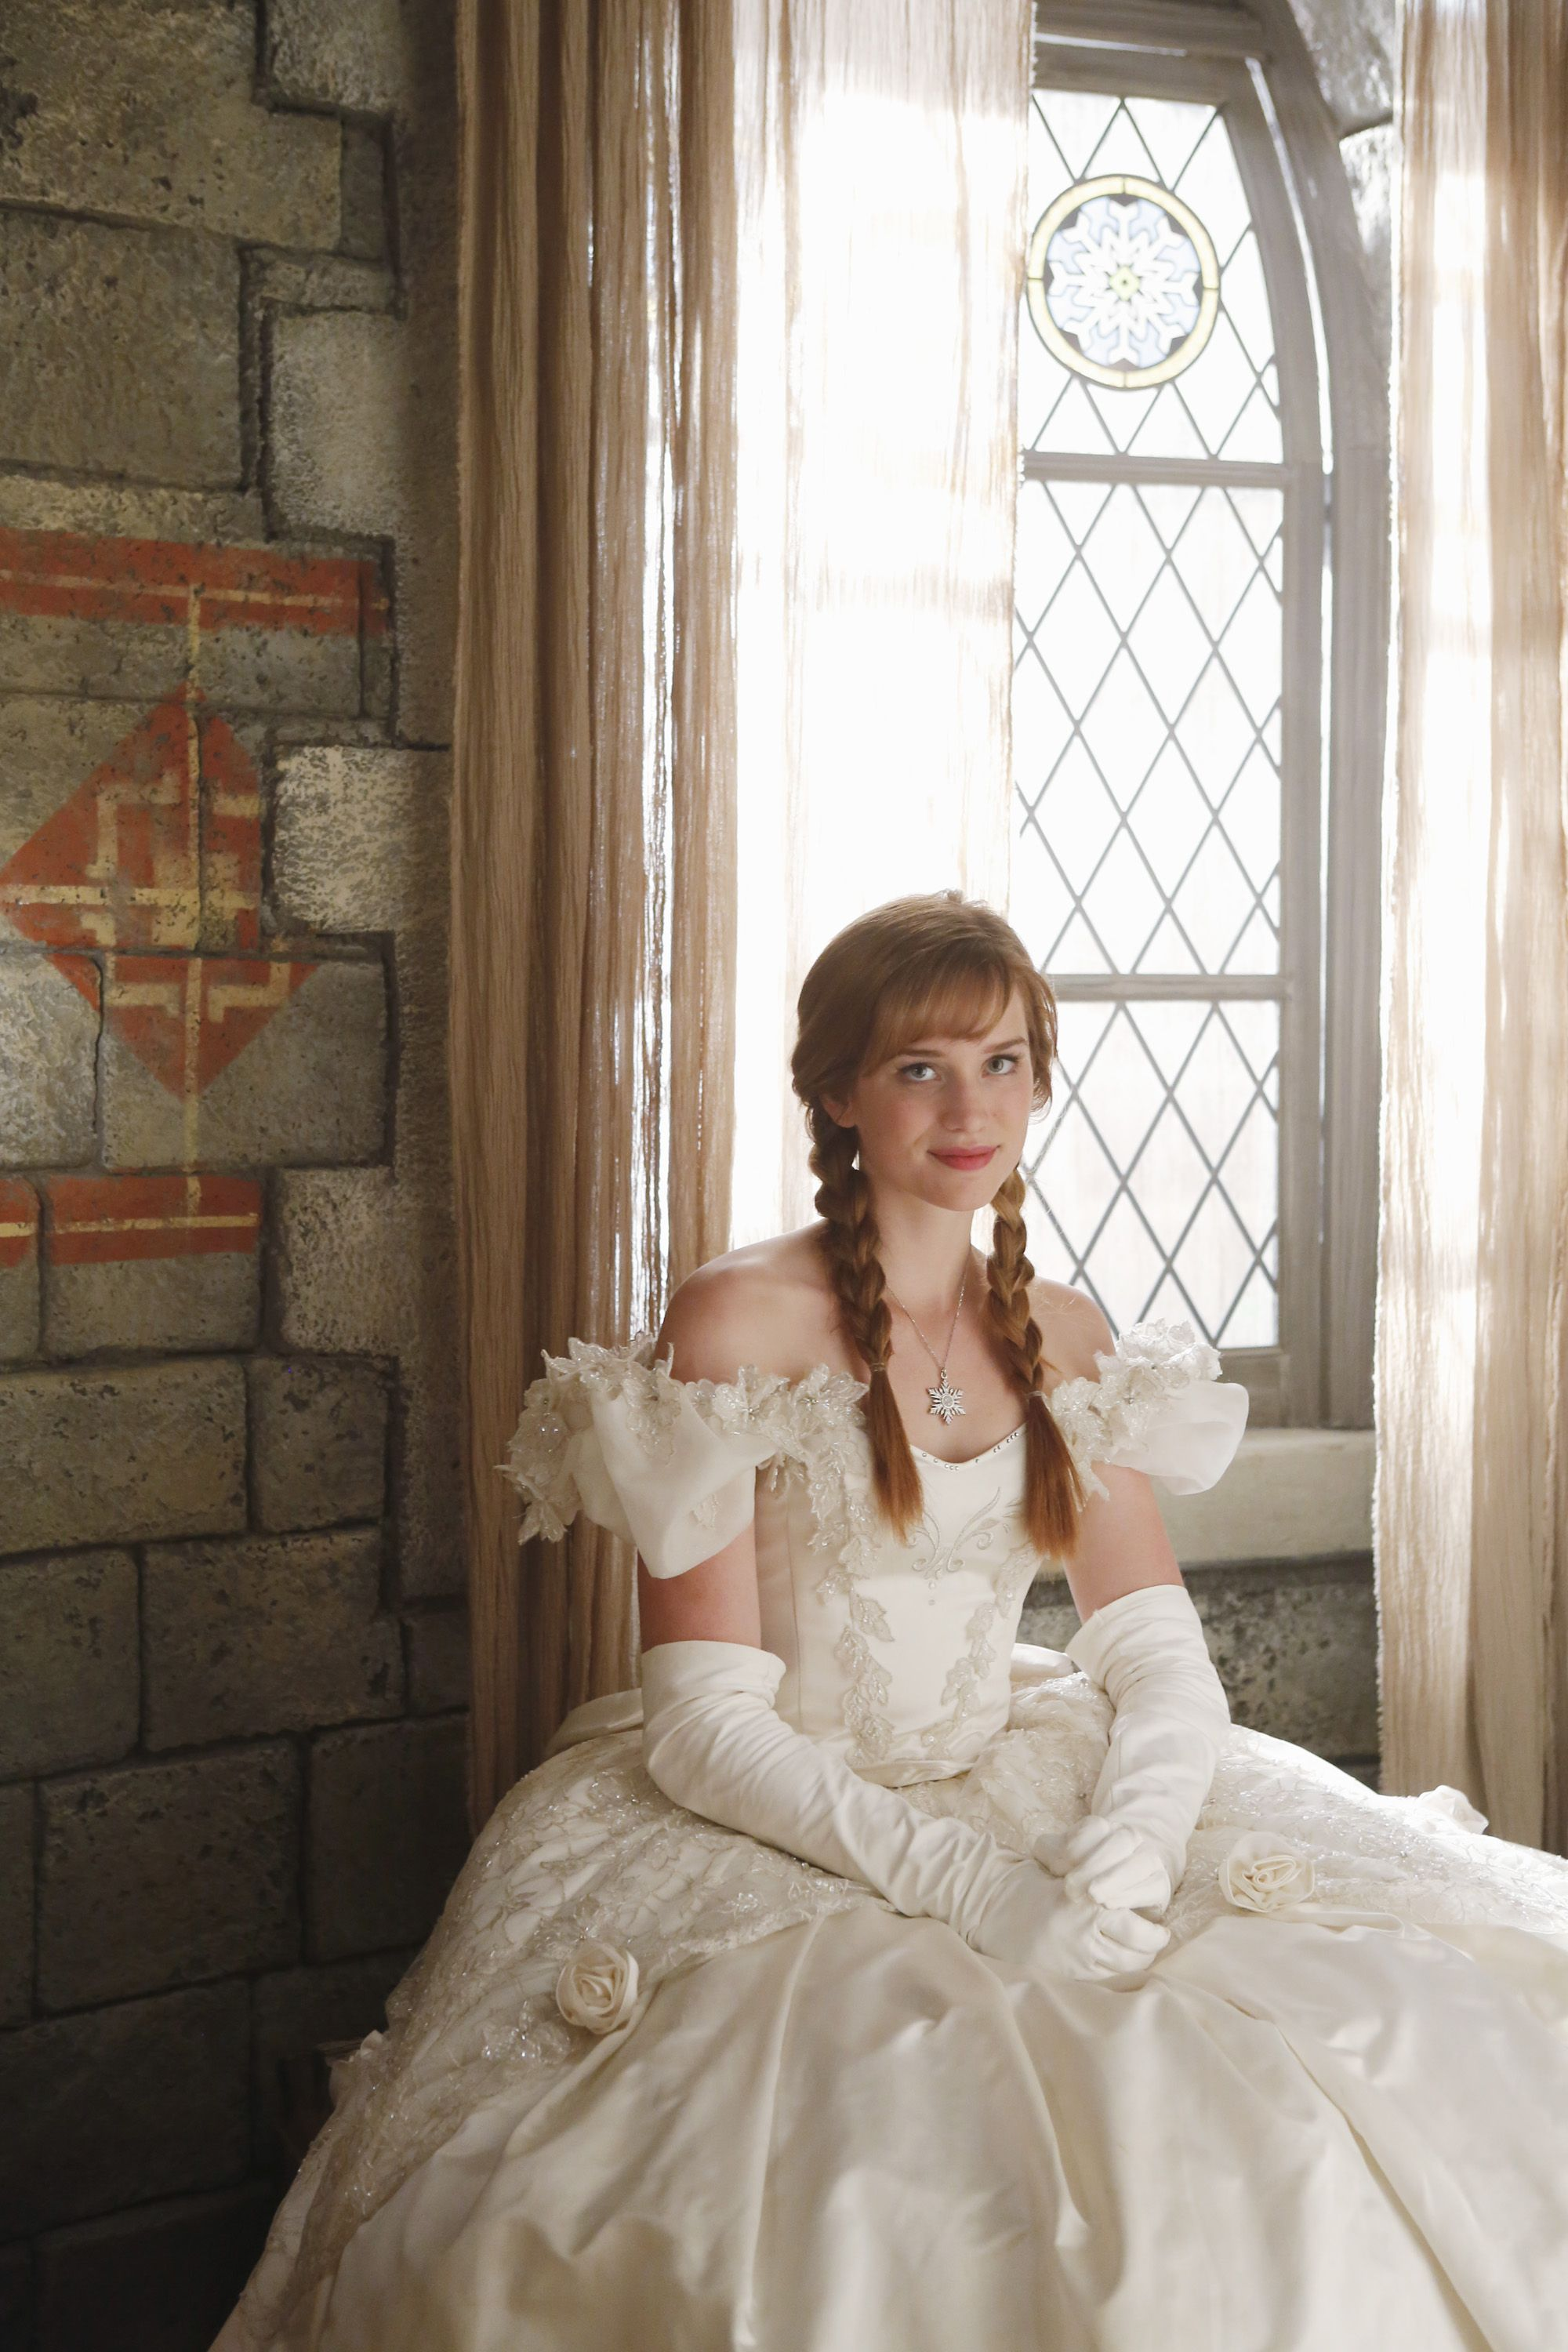 mothers wedding dresses Anna in her mother s wedding dress OUAT